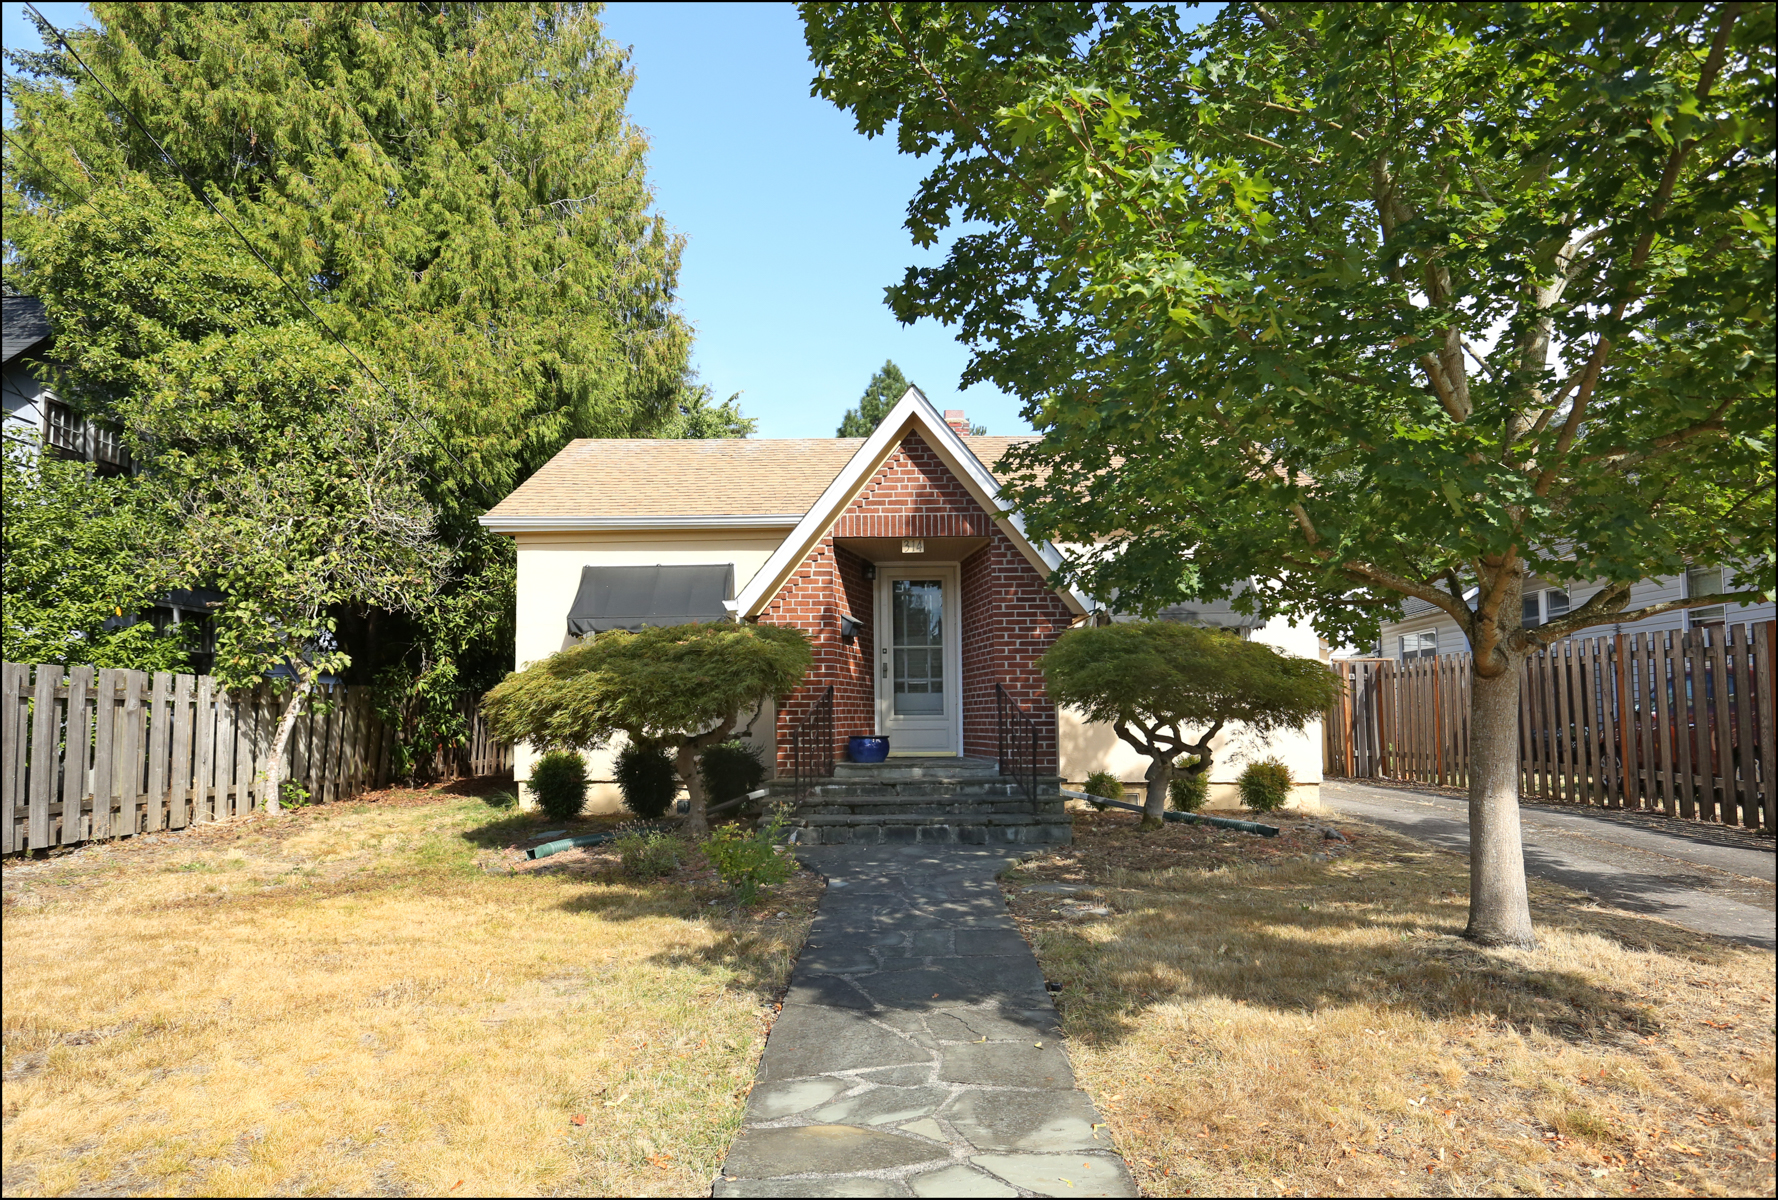 314 NE 63rd Ave  Tabor Cottage $359,900    SOLD    for $ 391,500